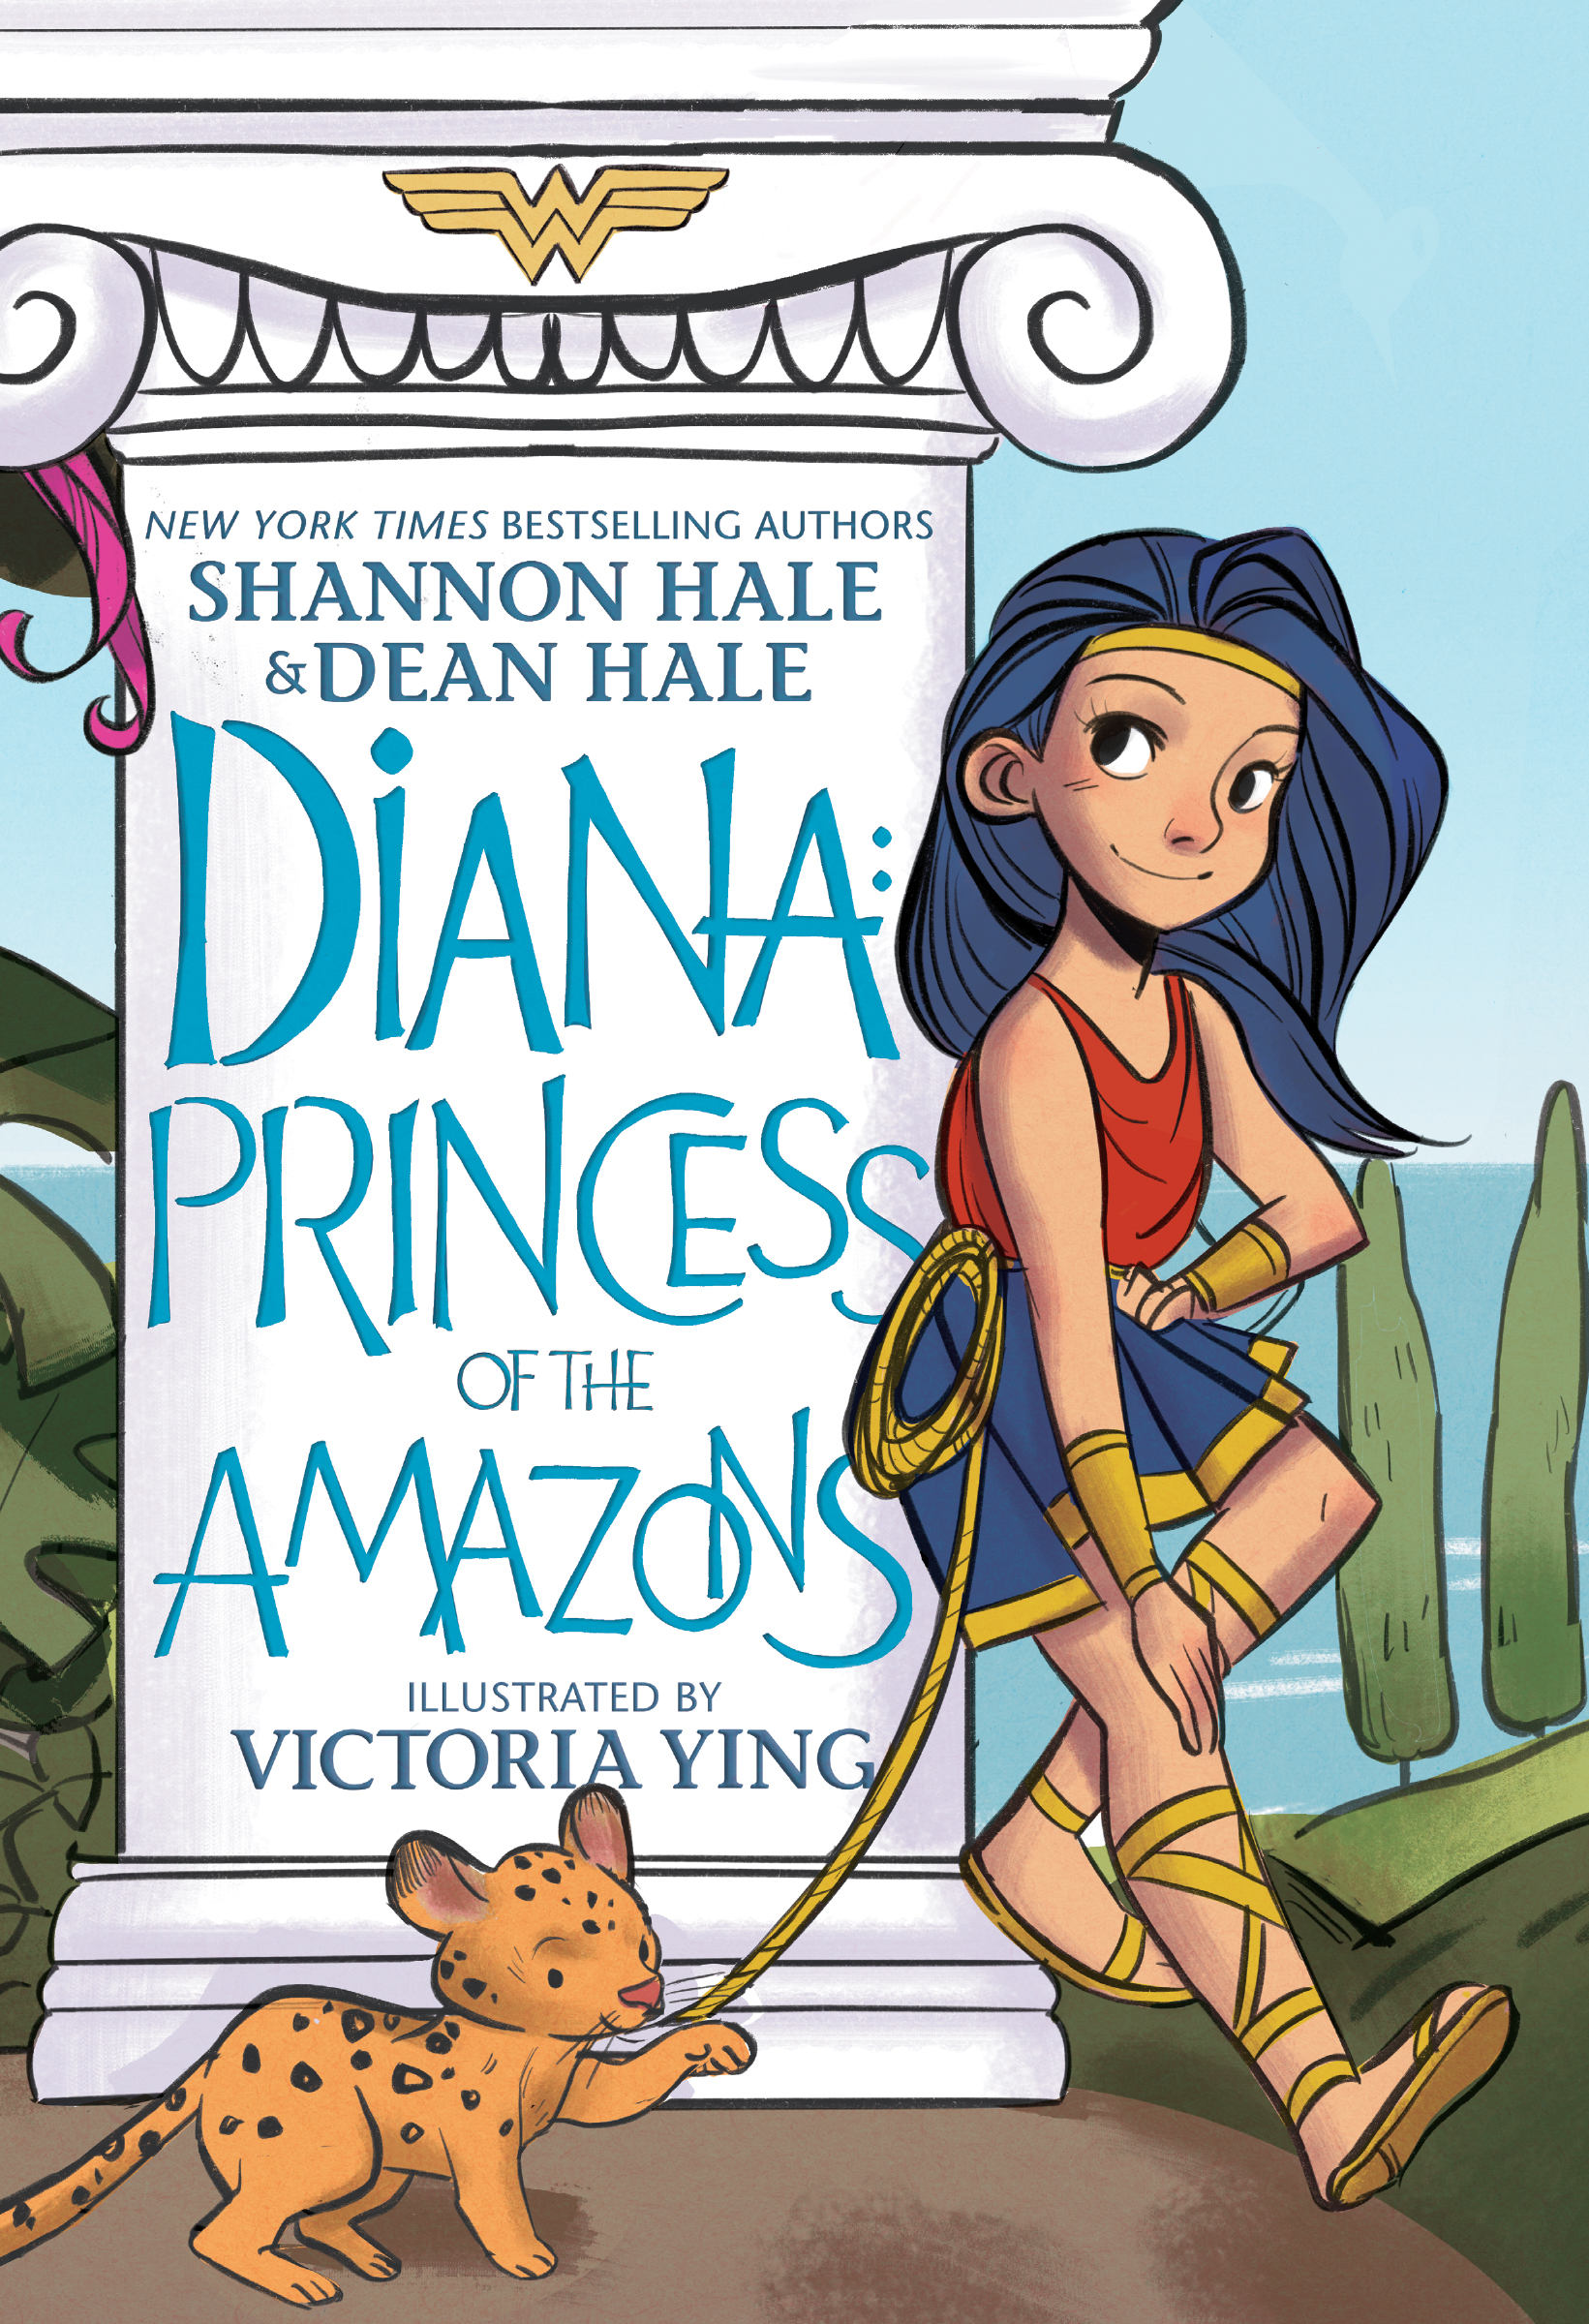 Graphic Novels for Winter 2020: Diana Princess of the Amazons